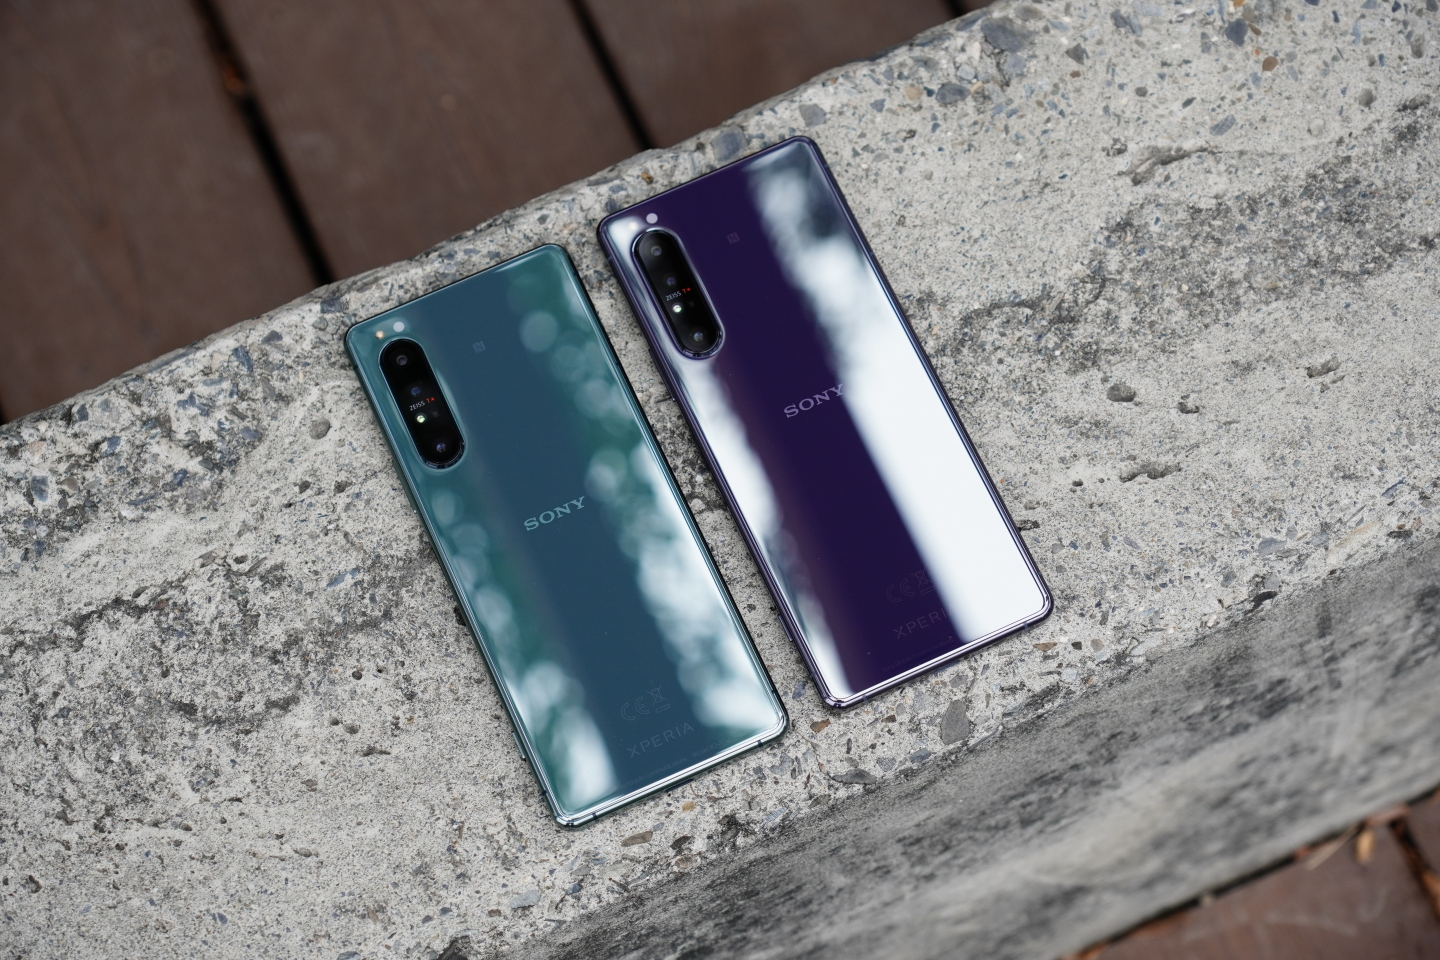 Sony Mobile 開放台灣 Xperia 1 II 全新 Android 11 系統升級